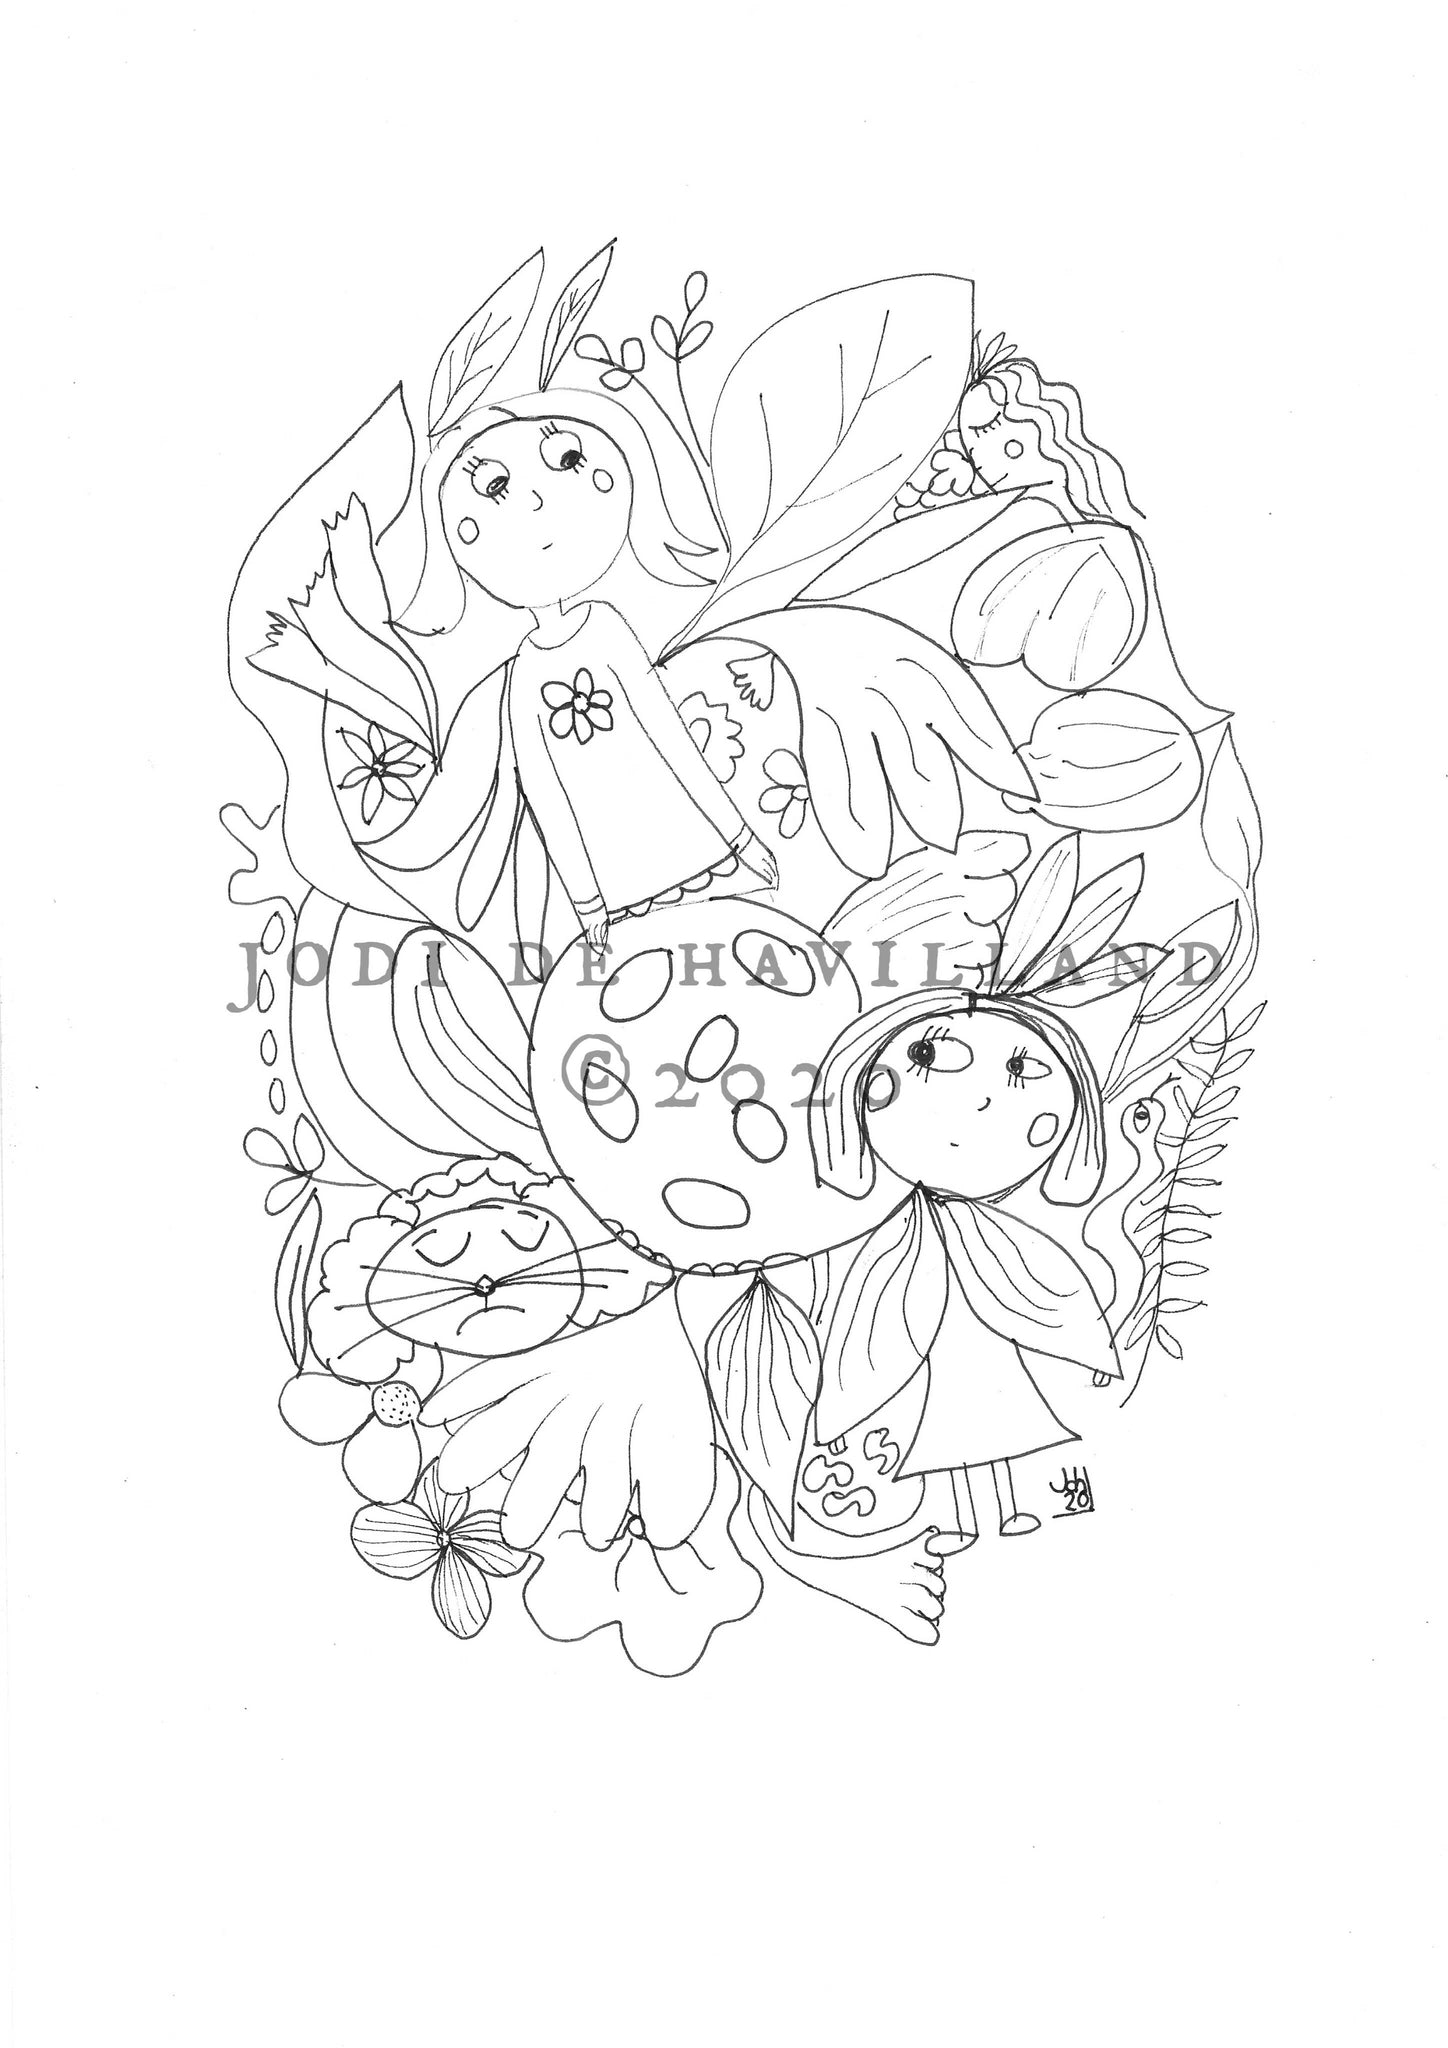 Fairy Flowers - printable colouring page